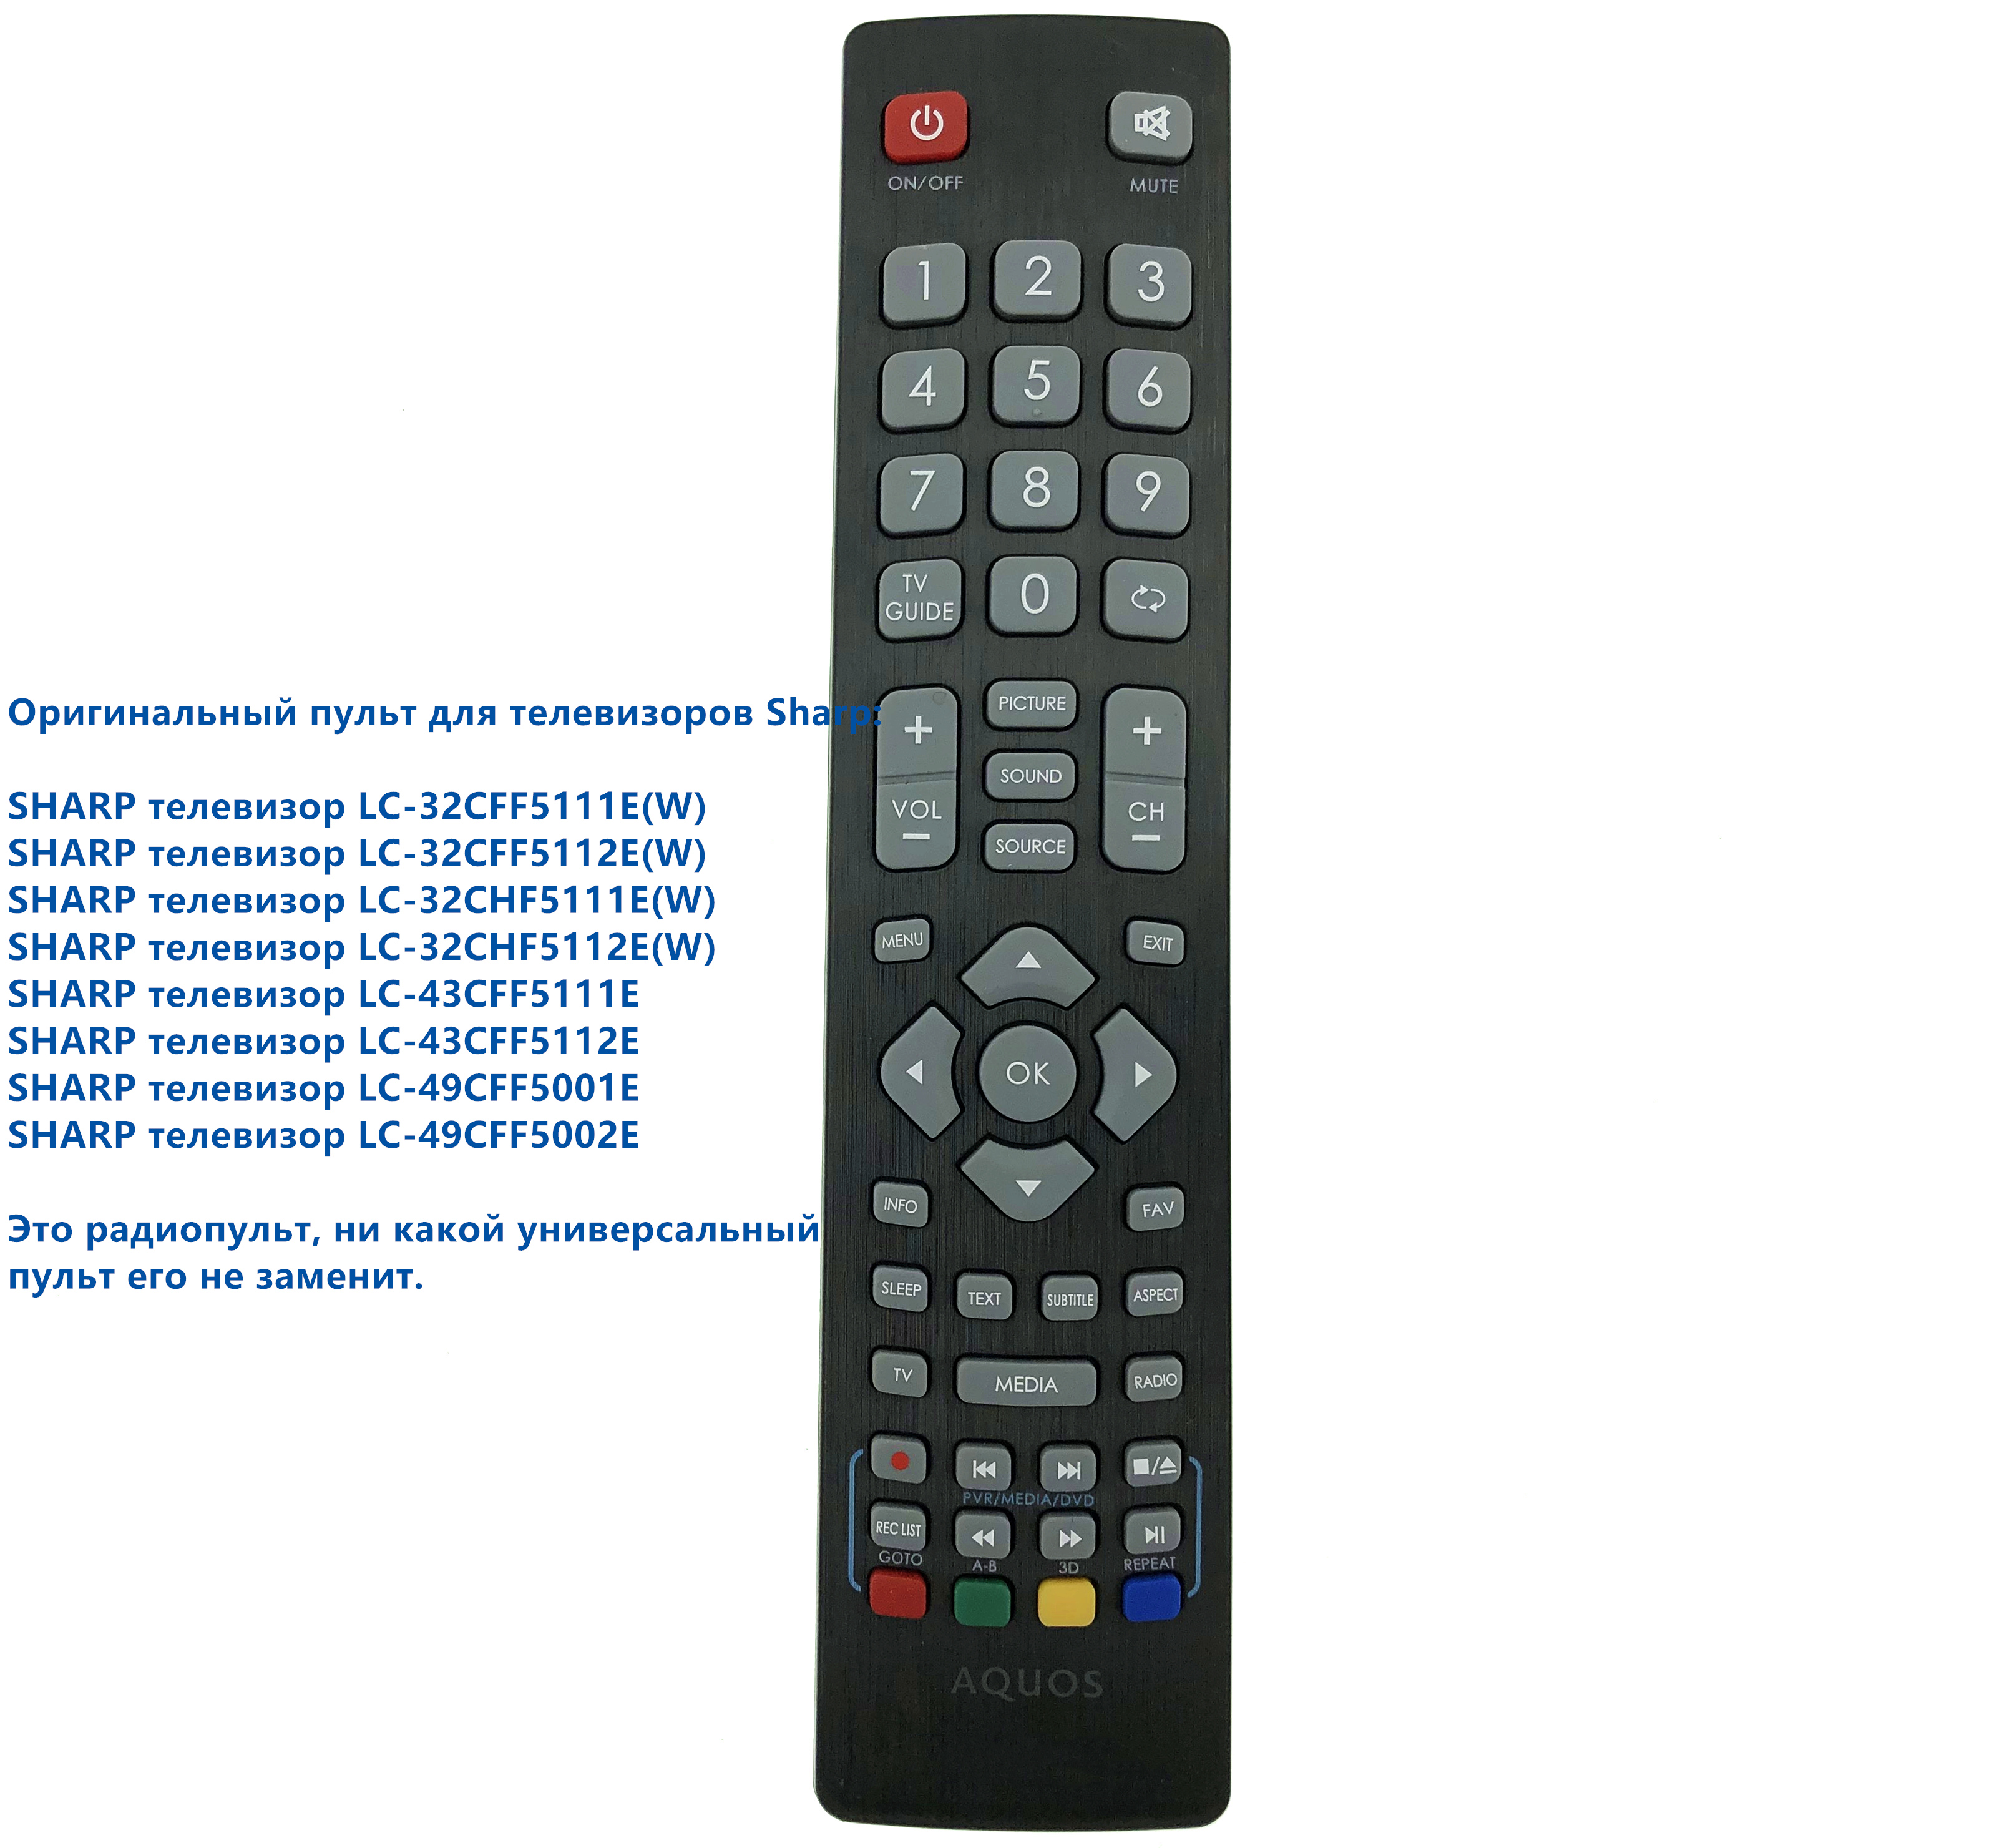 New RF Remote Control For SHARP Aquos TV LC 43CFF5111E LC 32CHF5112E(W) LC 43CFF5112E LC 32CFF5112E LC 49CFF5001E LC 49CFF5002E